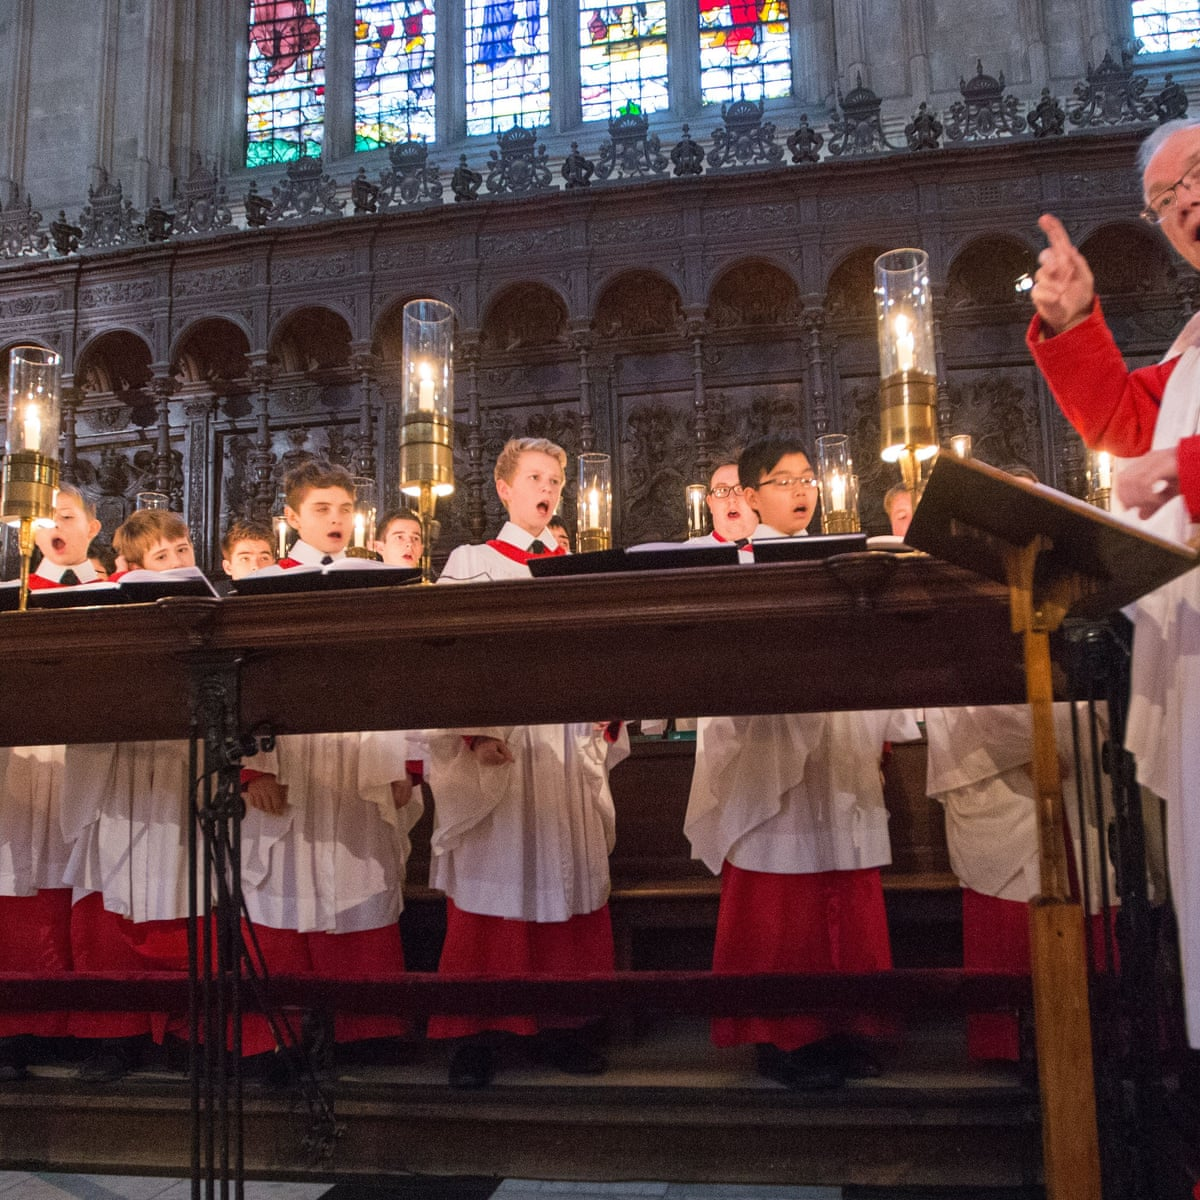 Kings College Christmas Broadcast 2020 Where To Listen King's College Cambridge choir prepares for live Christmas